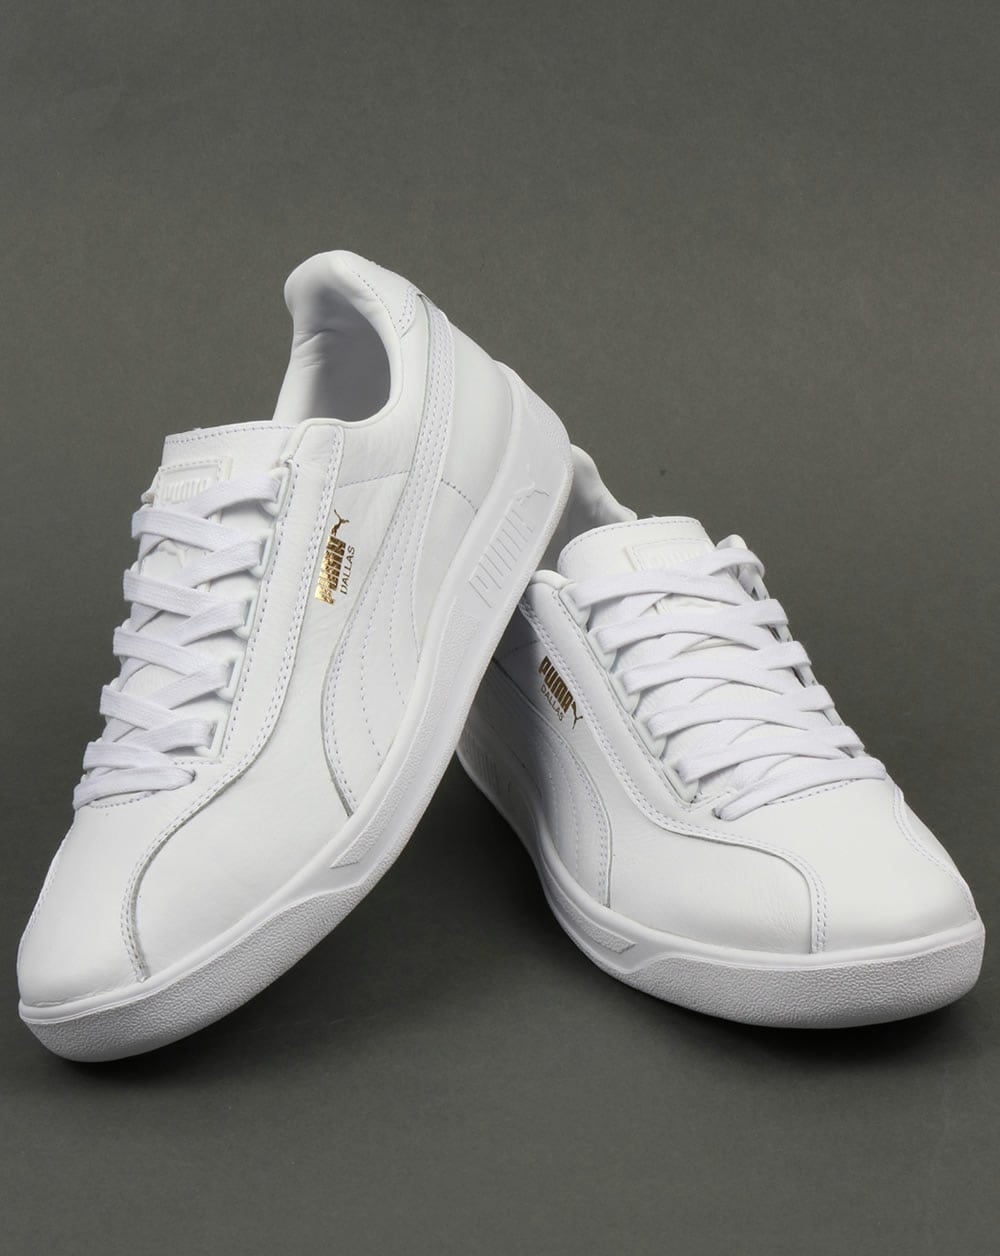 Puma Dallas OG Trainers White,leather,Shoes,Sneakers Caterpillar Shoes